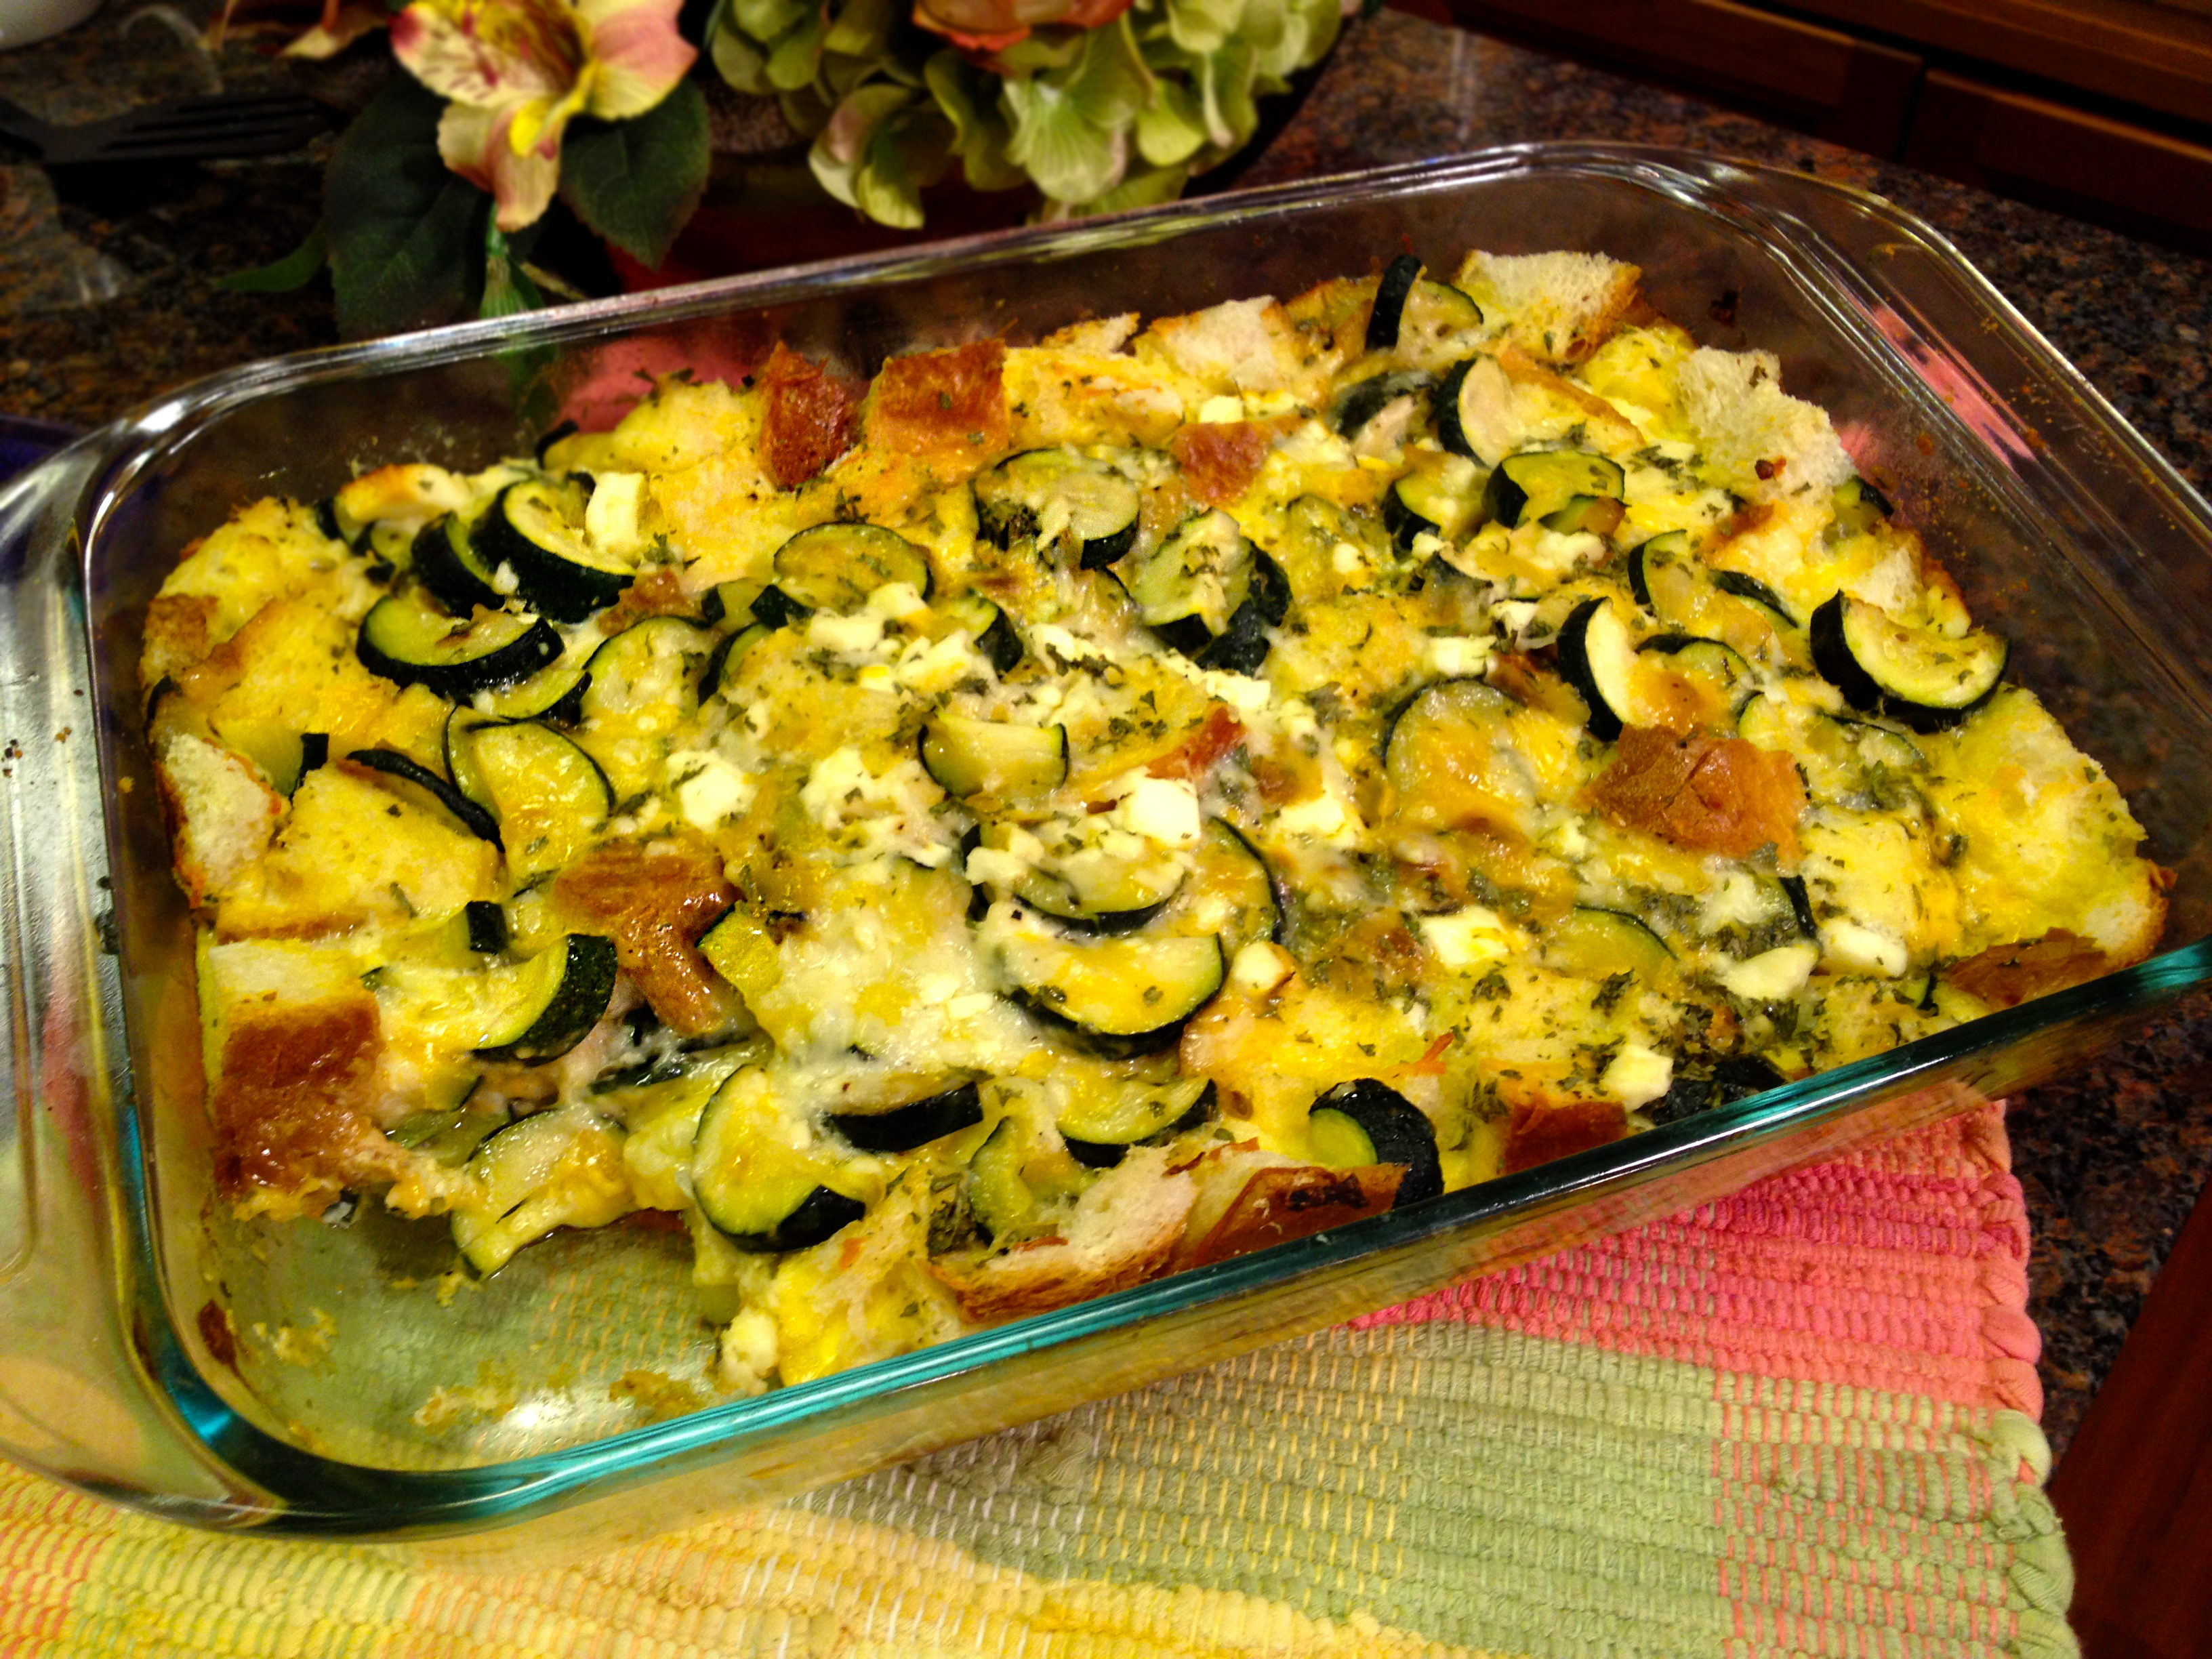 This new strata uses zucchini and focaccia bread. It's great for ...